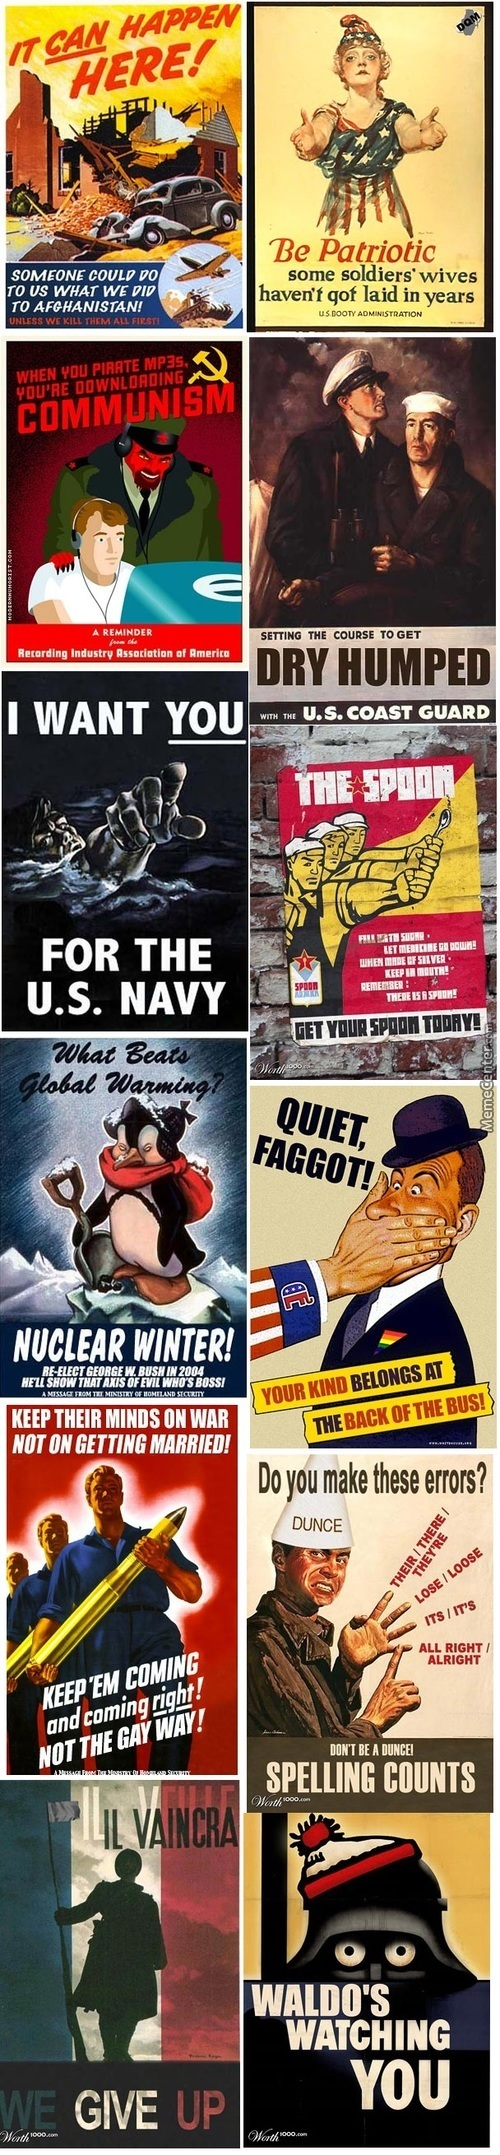 Some Of The Coolest Propaganda Parodies. Long Post Ahead